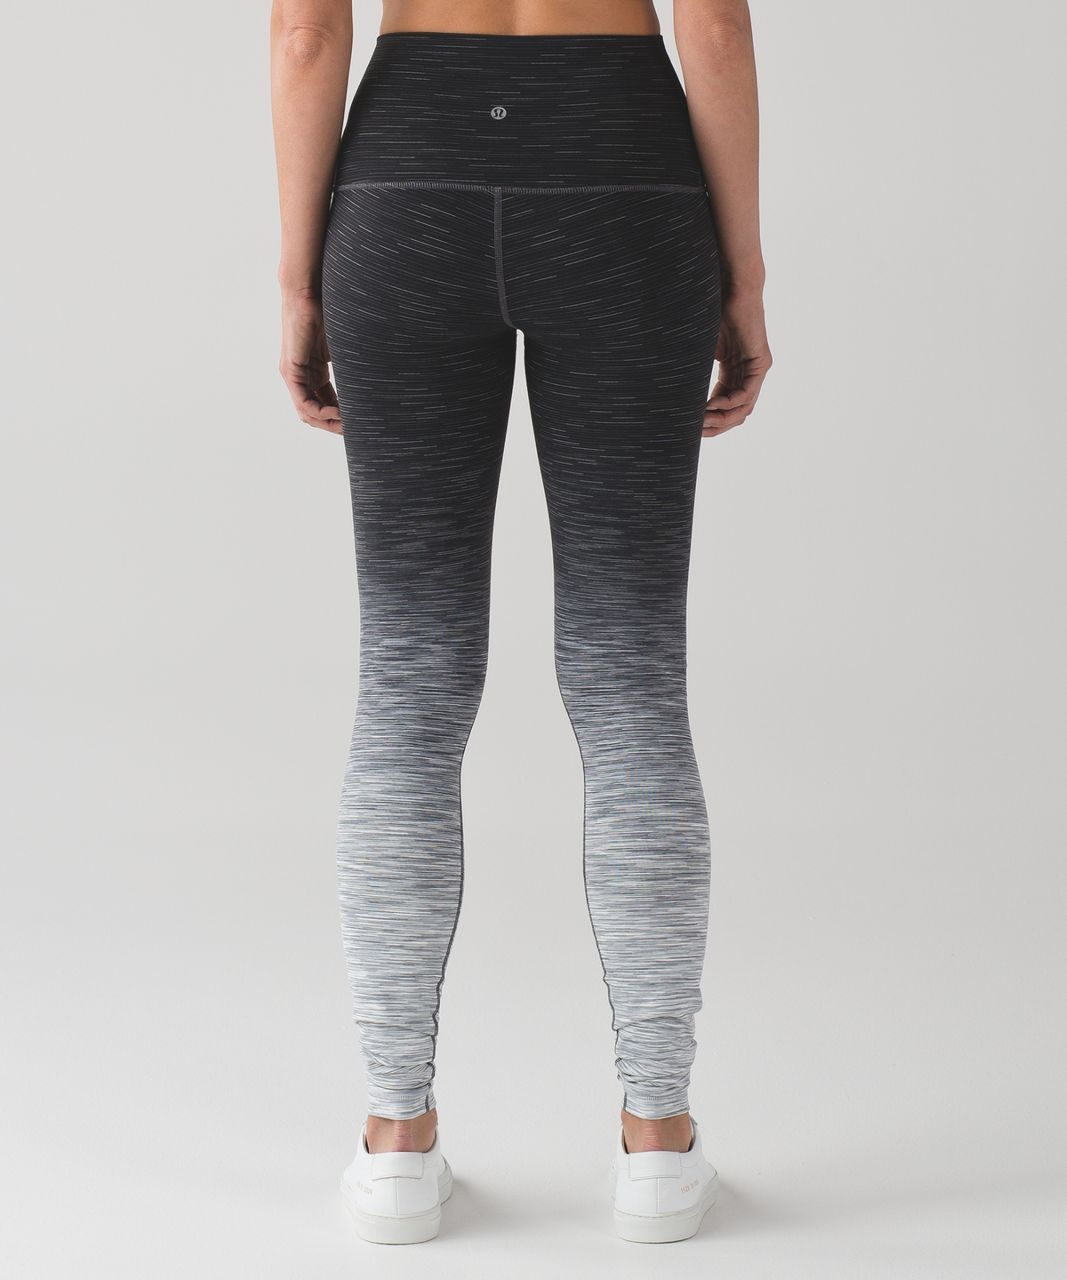 a659fb6580 These versatile, high-rise pants were designed to fit like a second  skin—perfect for yoga or the gym. Full-On® LuonA tight-knit version of our  ...